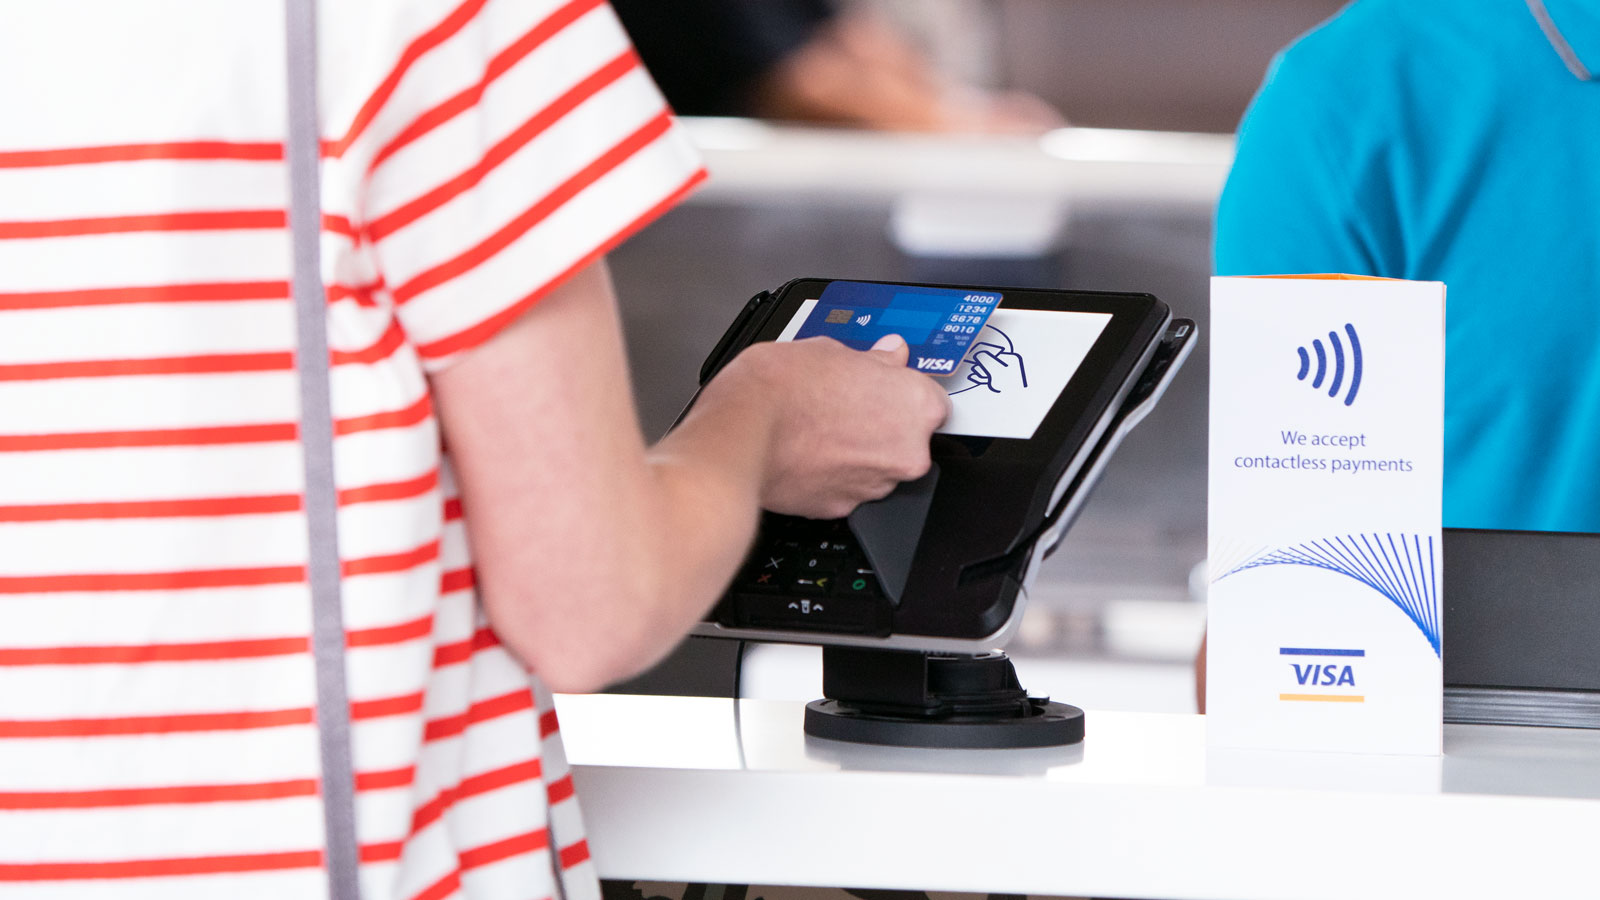 Woman paying with a Visa contactless card at a counter.